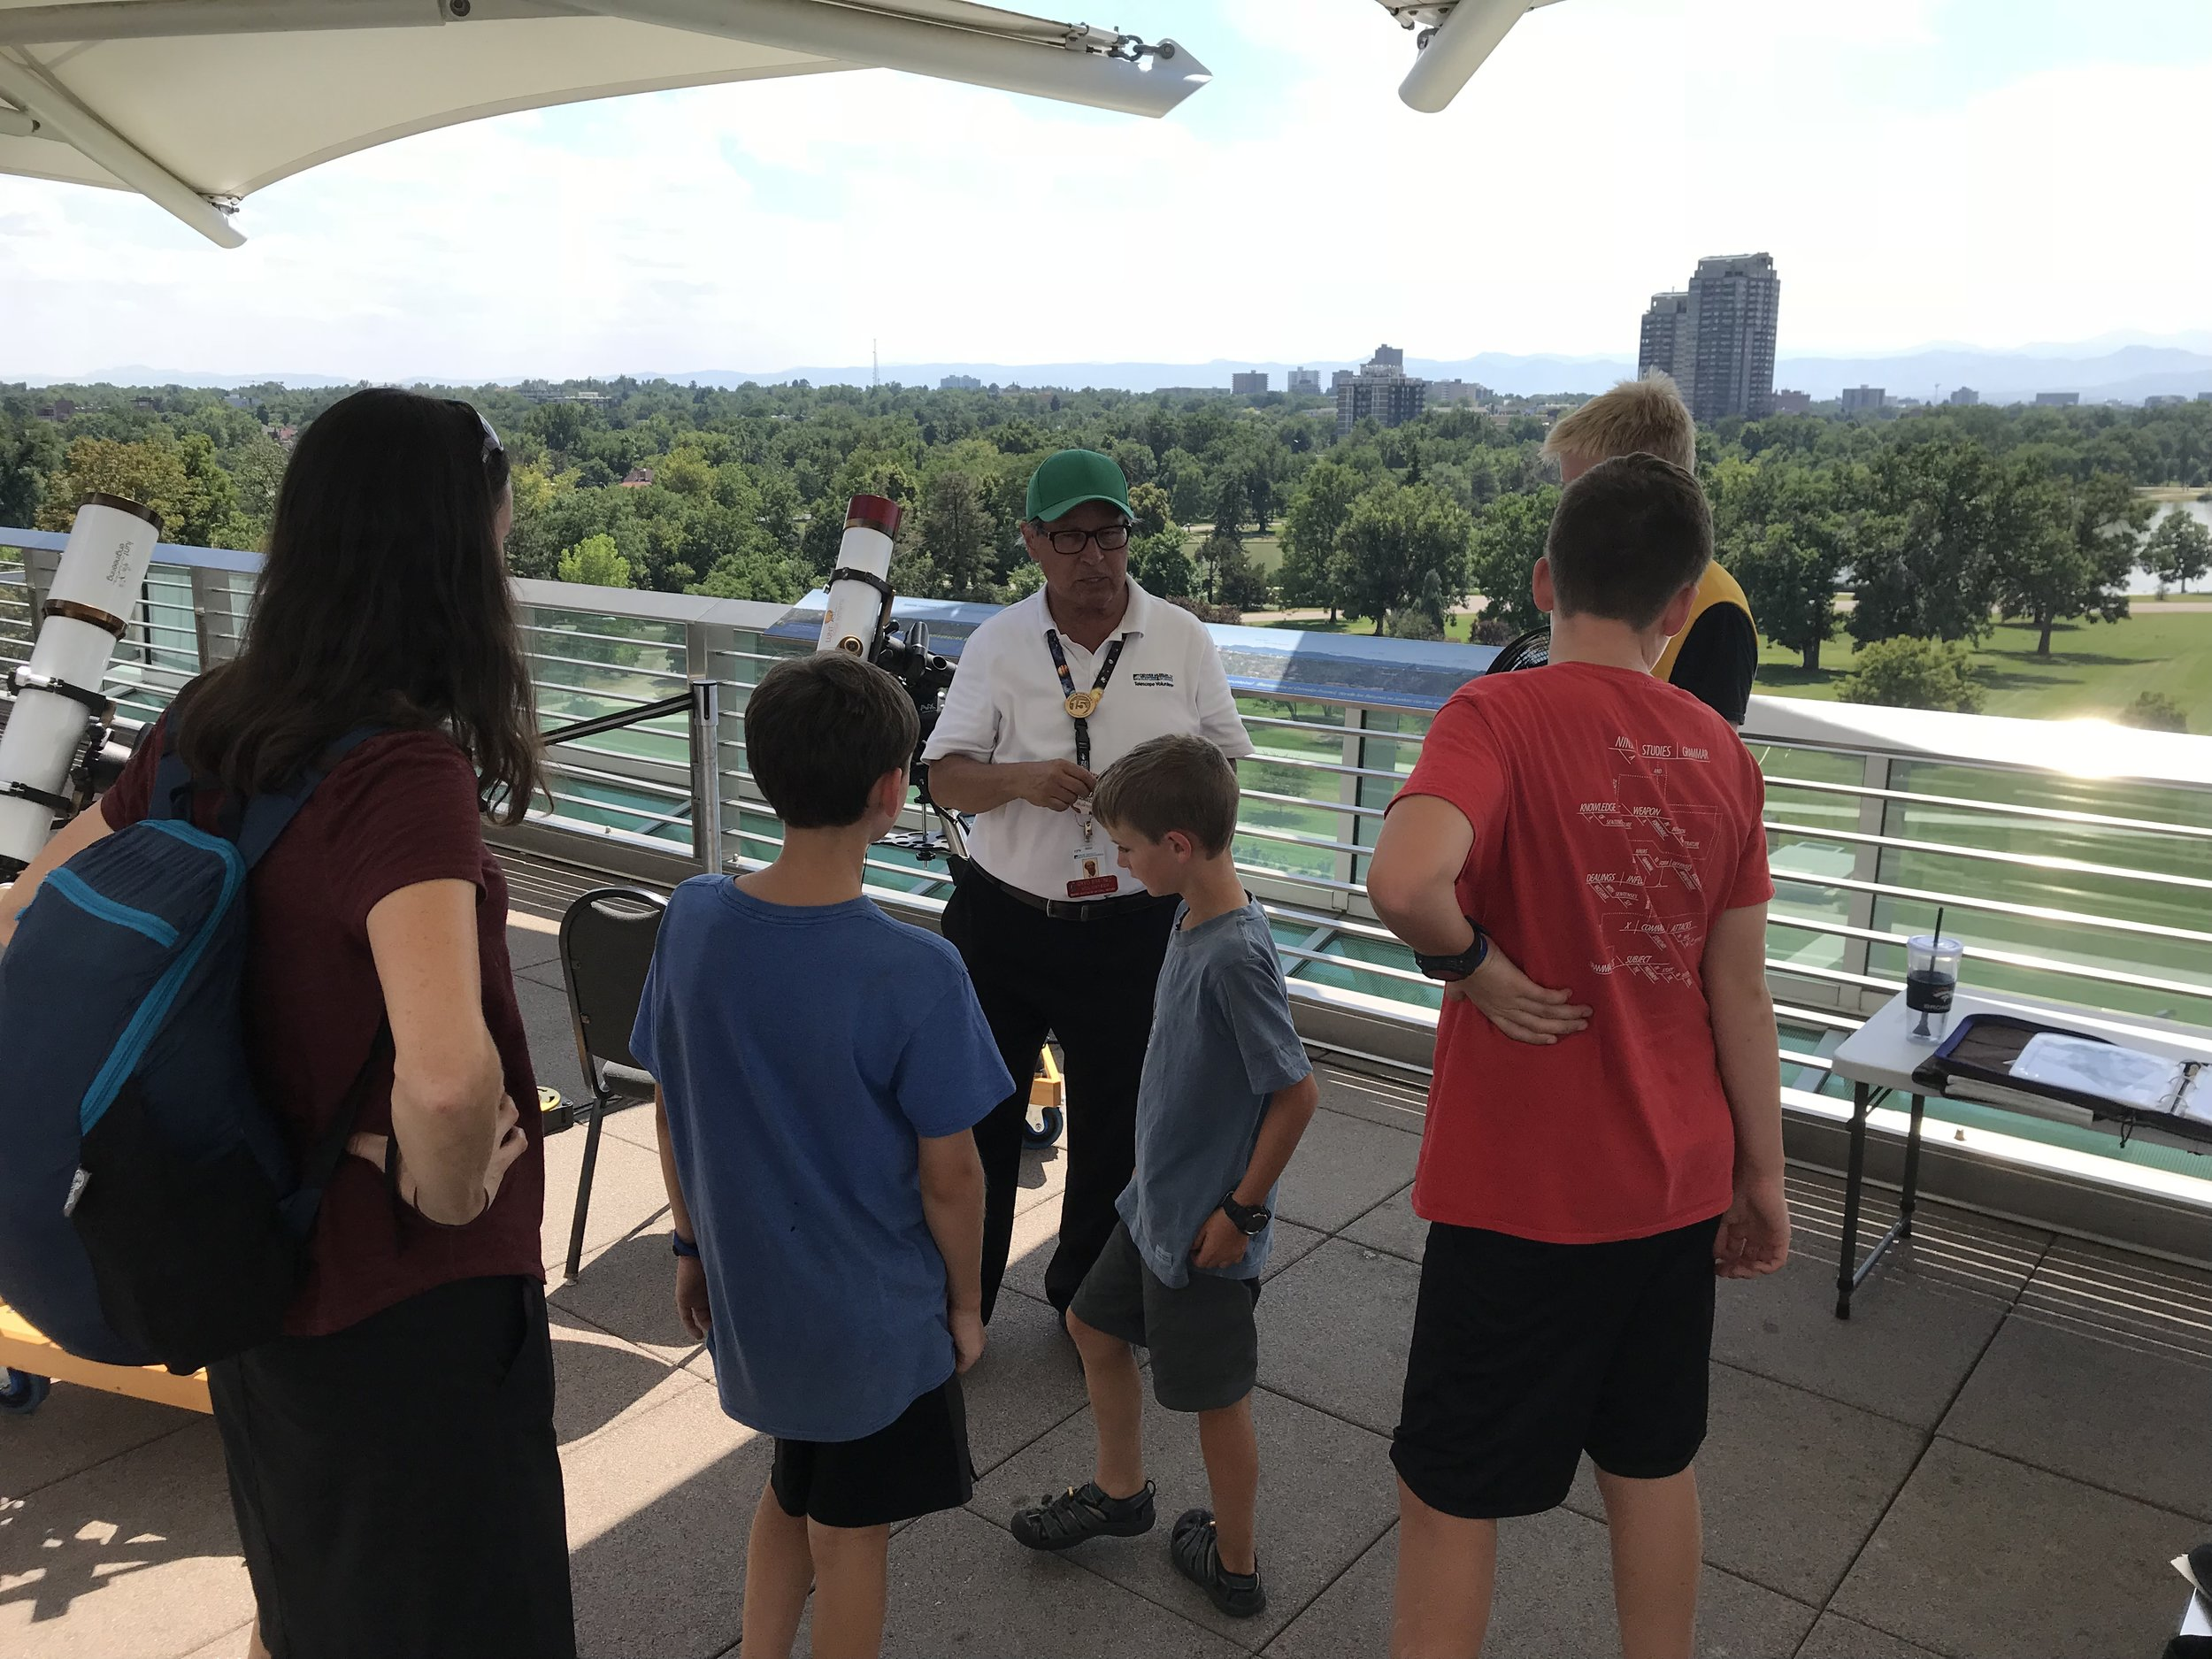 On our way to Boulder (i.e., driving the rental vehicle), we stopped for a couple of hours at the Denver Museum of Nature and Science. In this picture we are on the roof top being guided to look at the sun through some special telescopes.